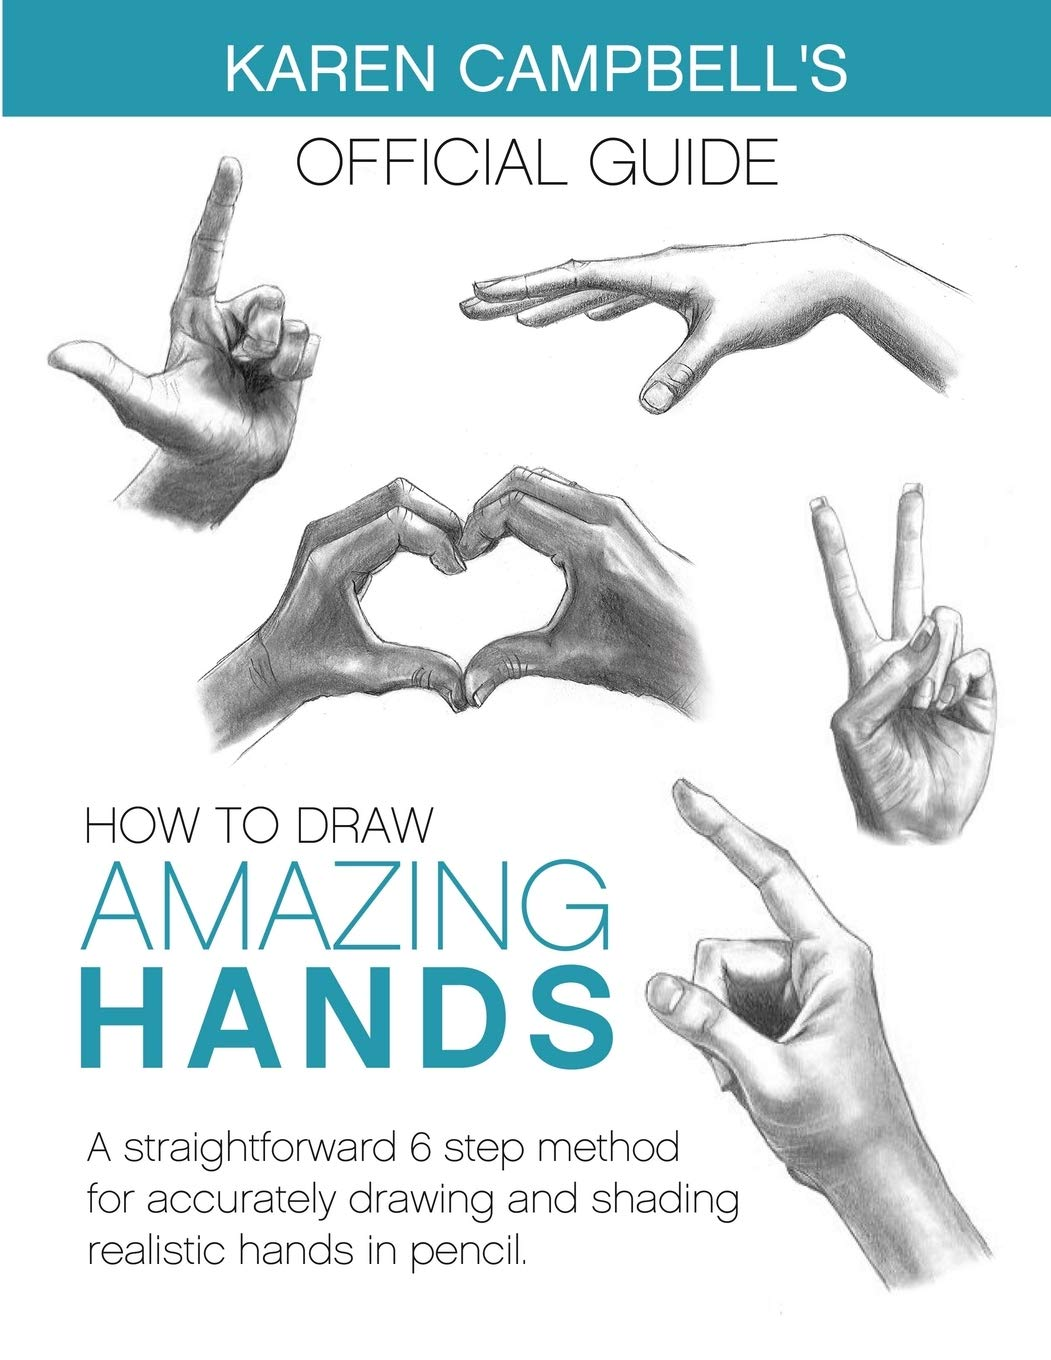 How To Draw Amazing Hands A Straightforward 6 Step Method For Accurately Drawing And Shading Realistic Hands In Pencil Karen Campbell S Official Guide Campbell Karen 9781734053036 Amazon Com Books